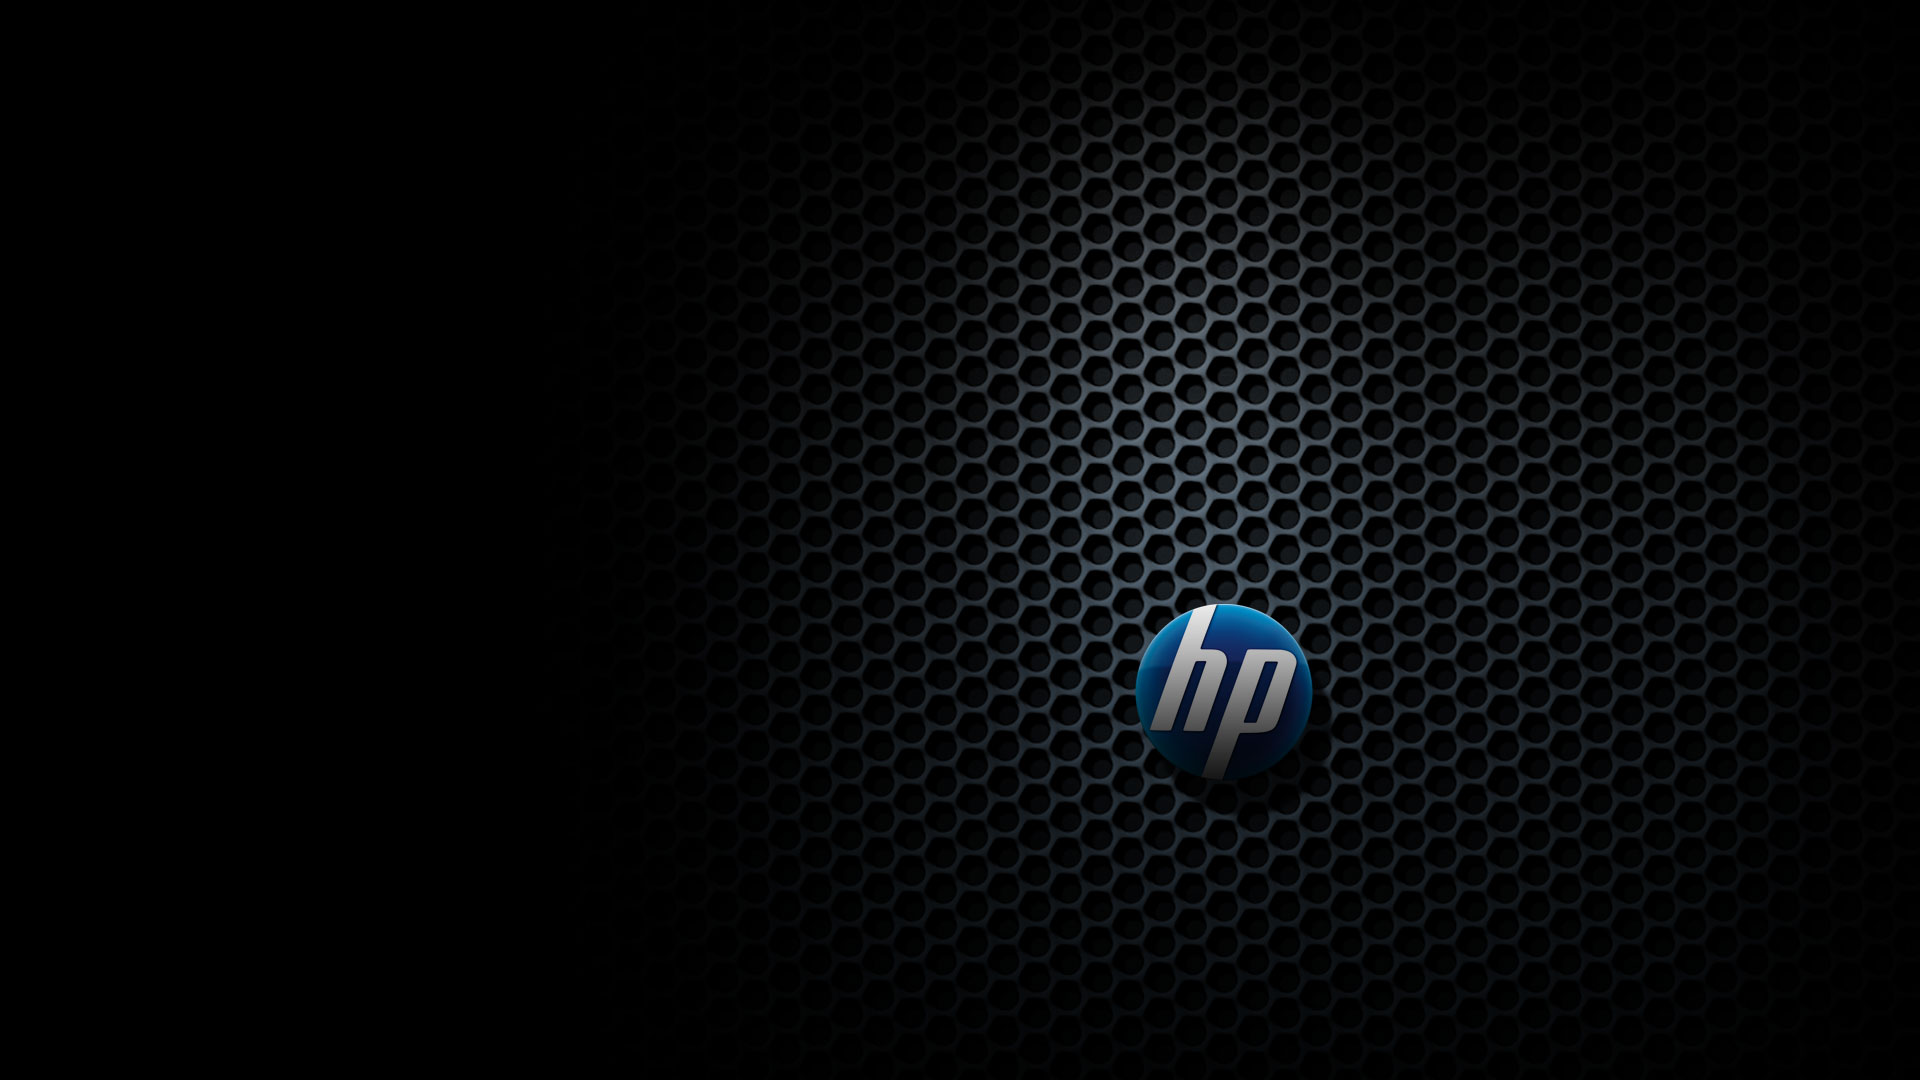 HP Desktop Backgrounds Windows 7 submited images 1920x1080